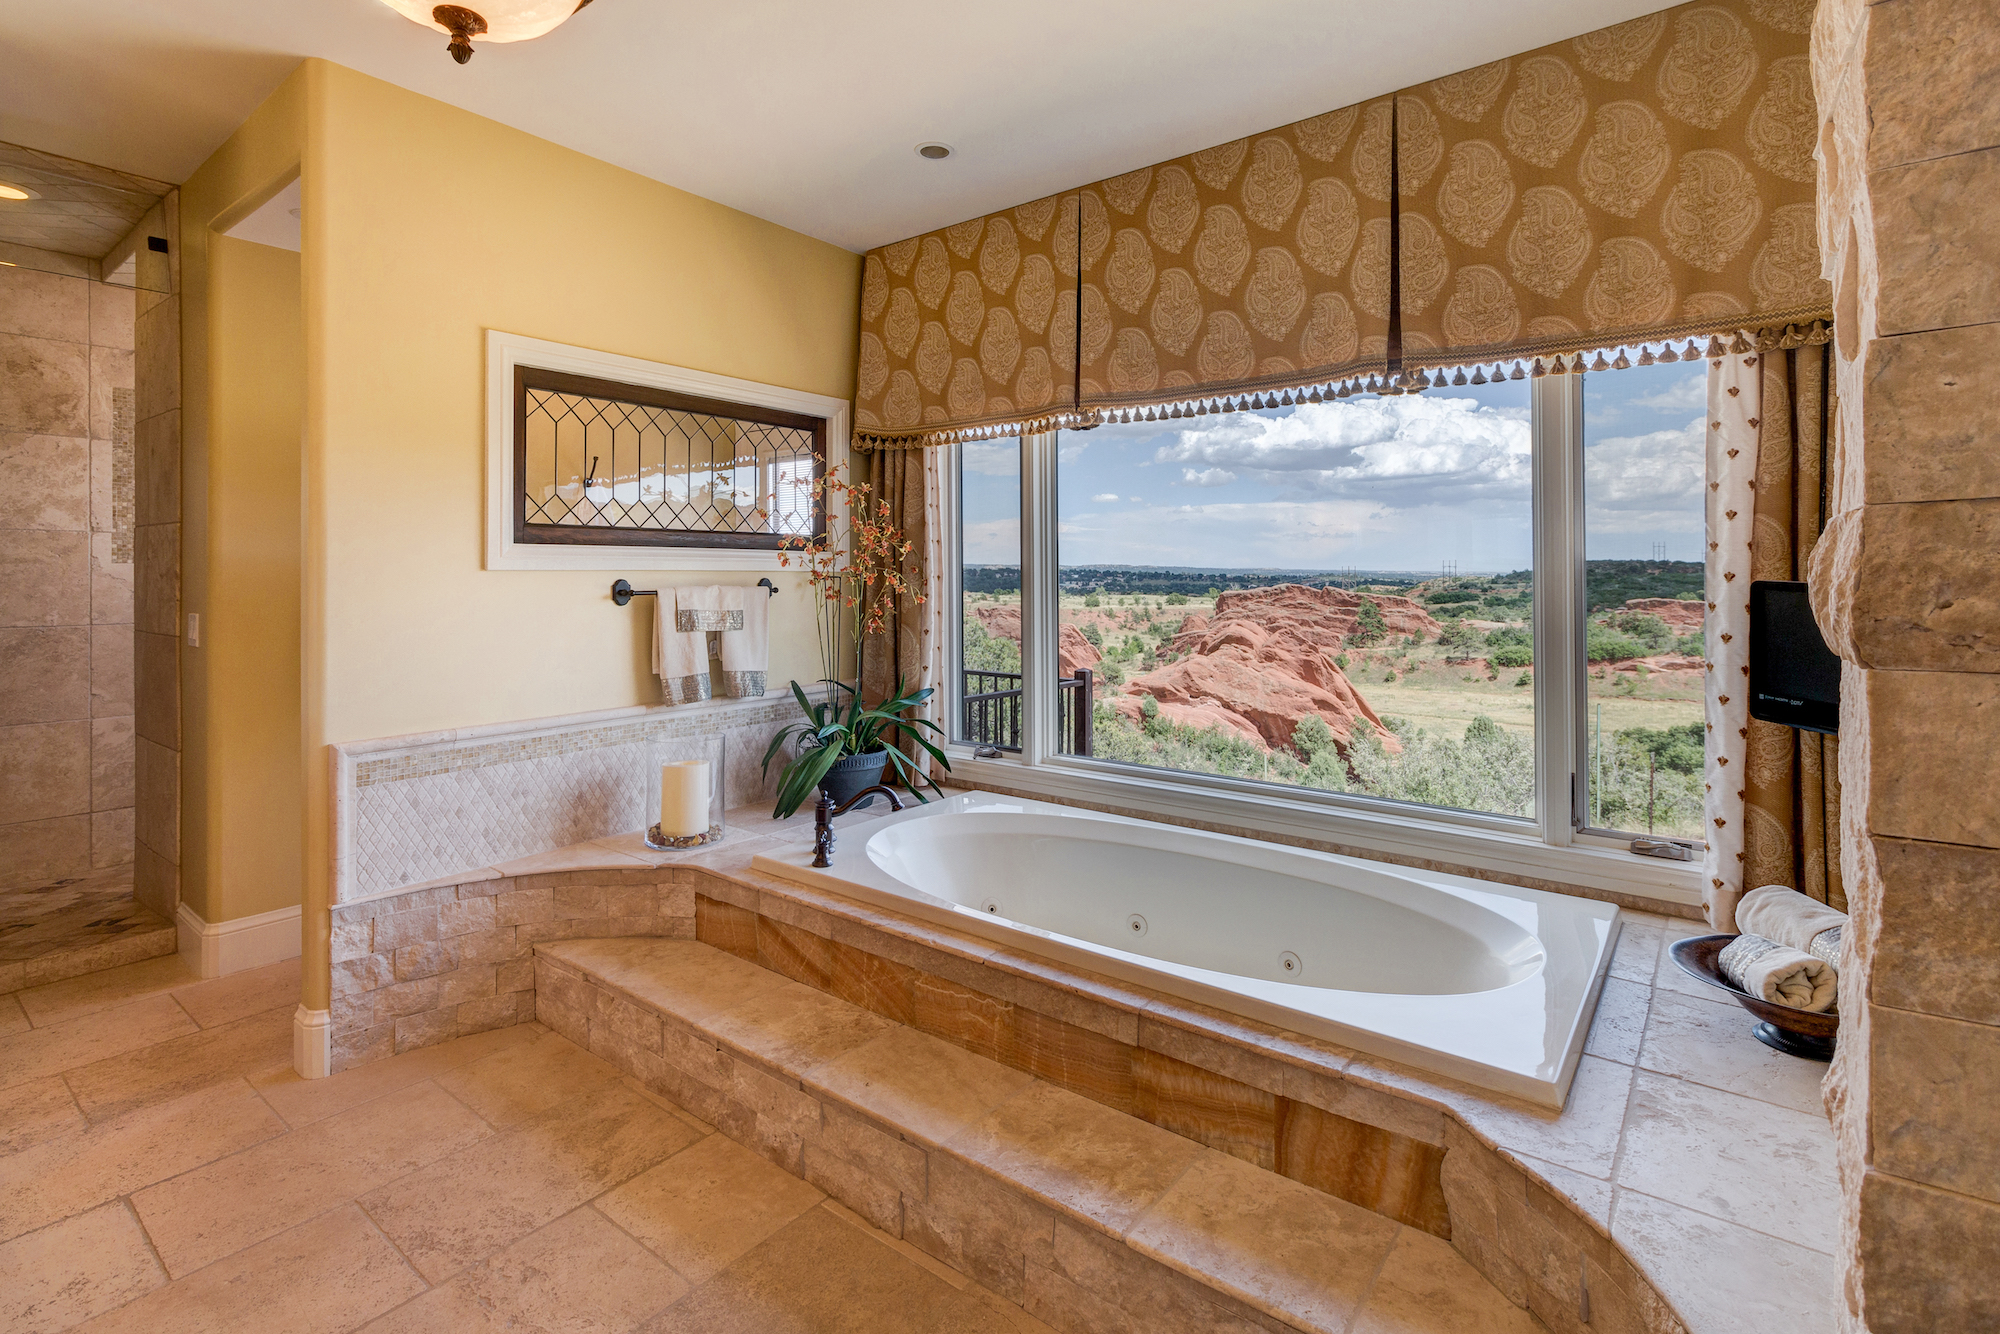 015-Jetted tub in master bath. Window has a remote controlled blind.jpg